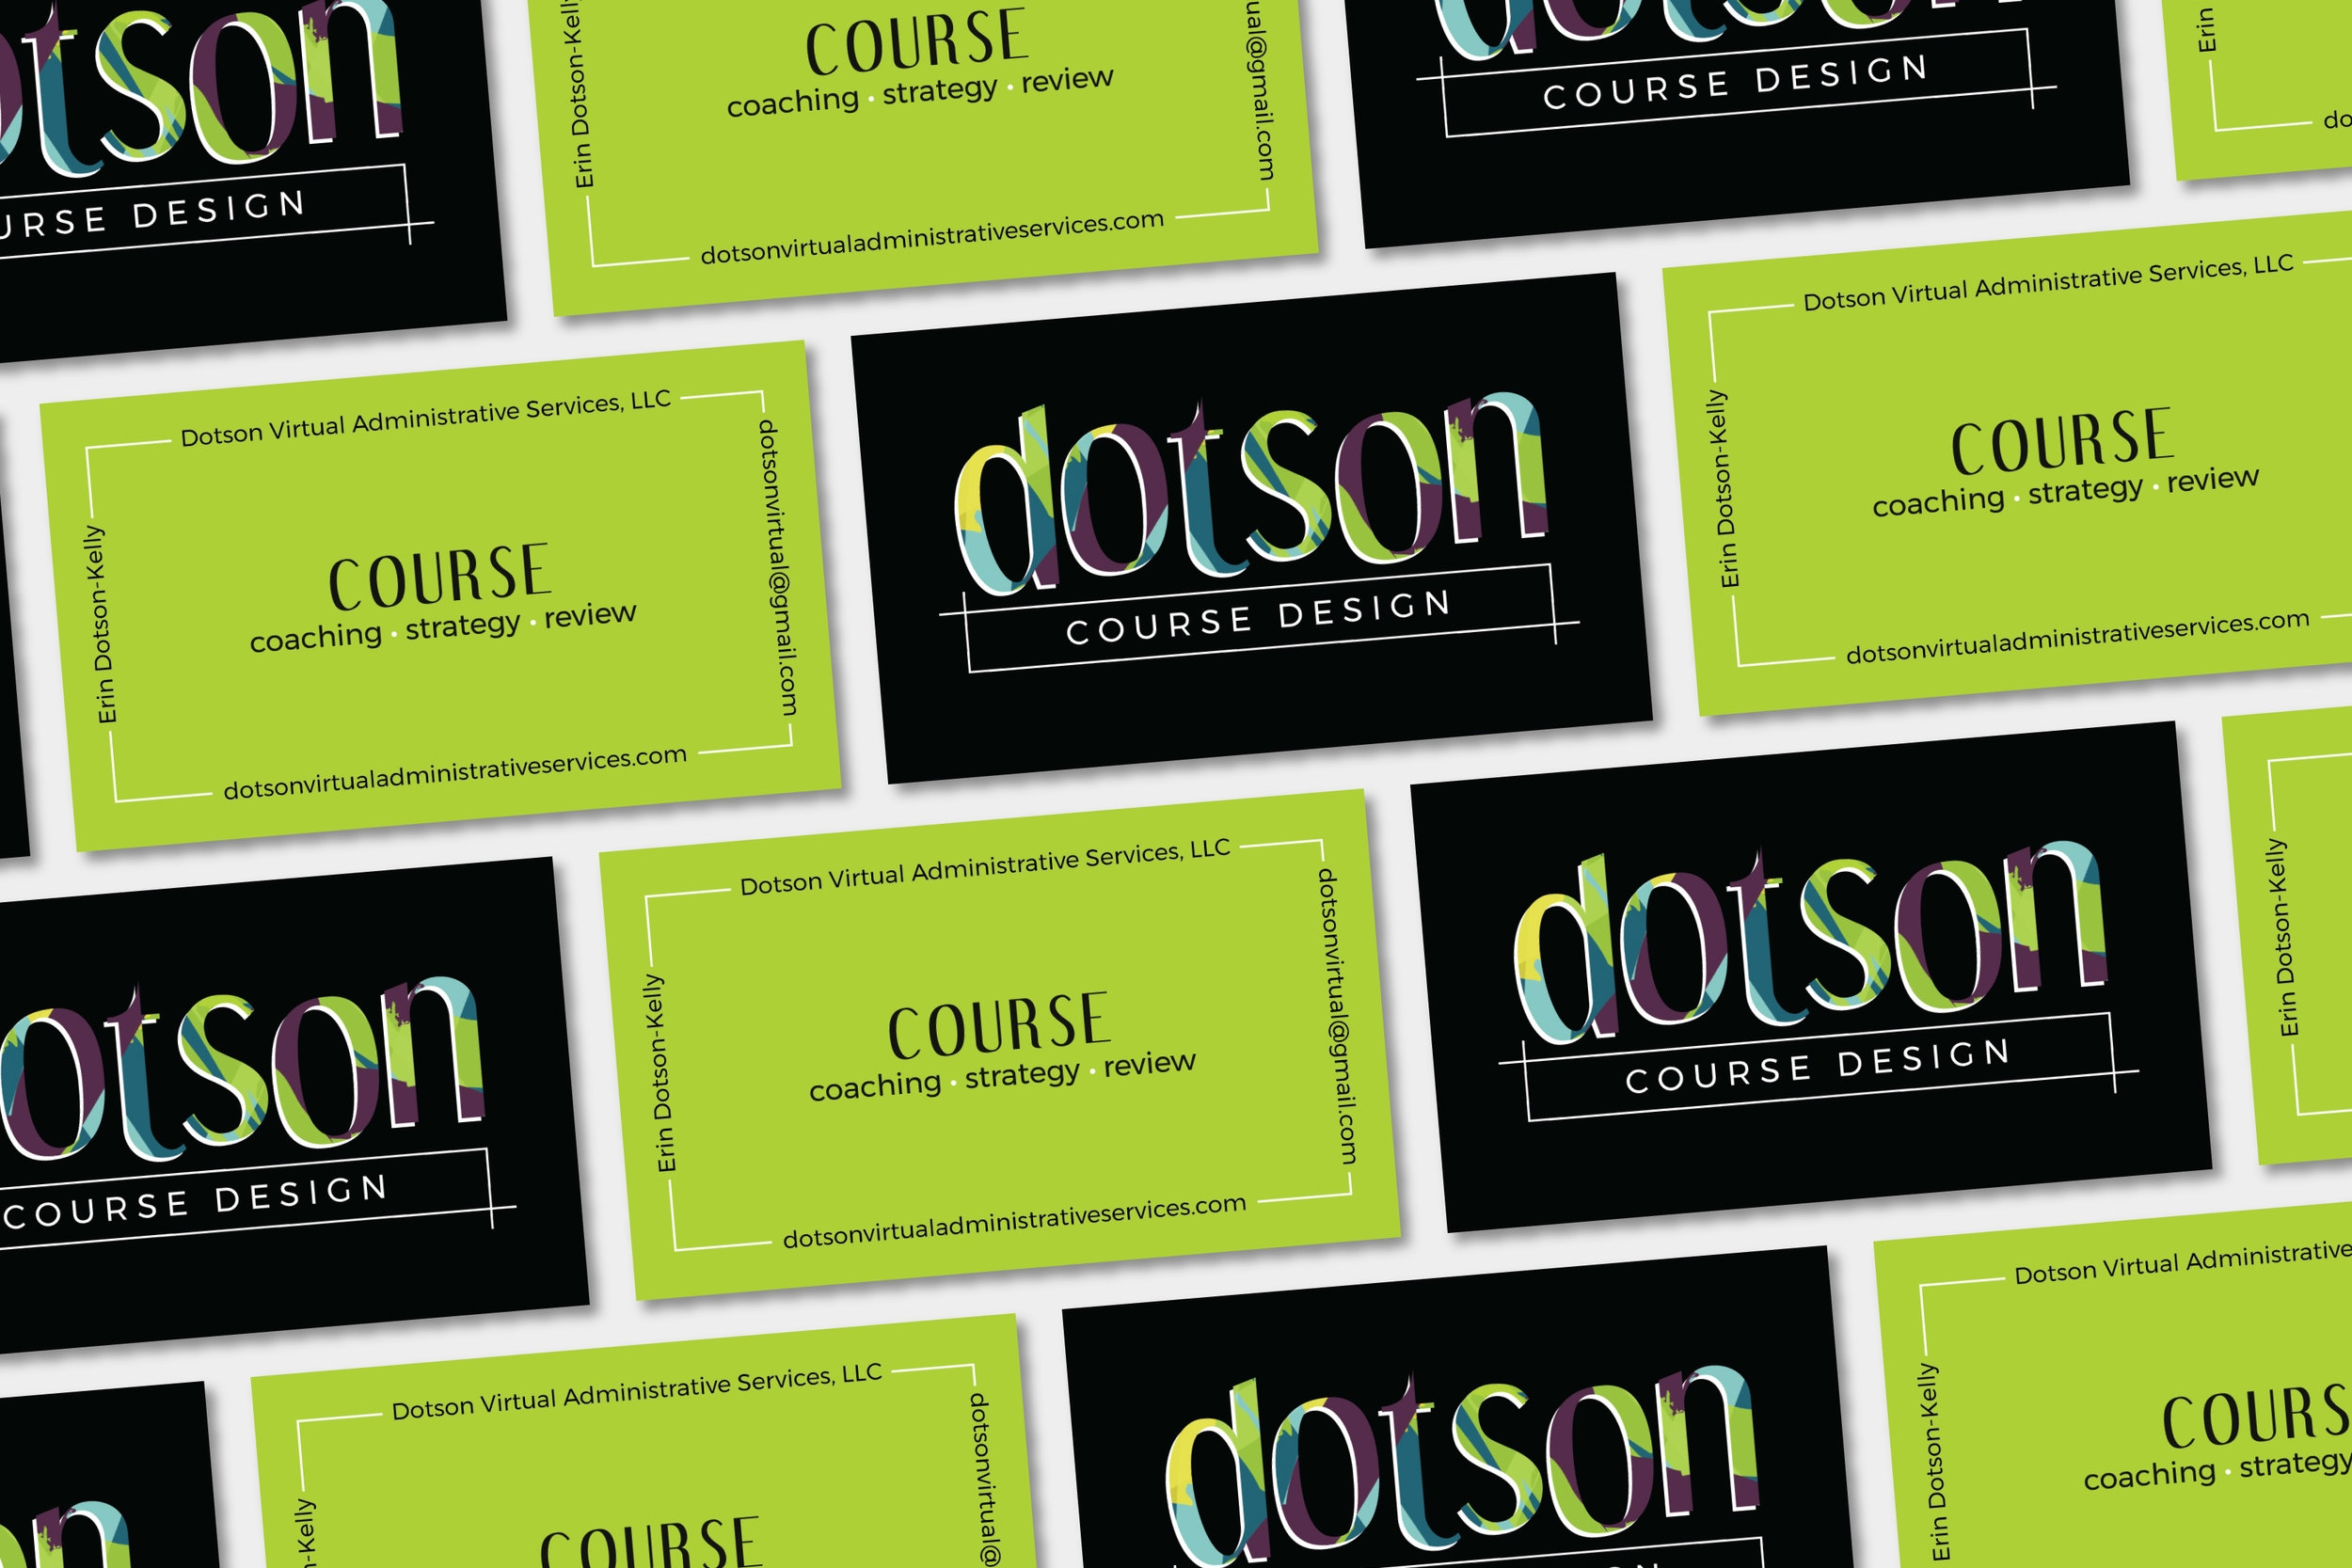 Dotson Course Design Business Cards | Tiffany Kuehl Designs  How fun are these business cards! The design is pretty simple, but the colors are unforgettable!  #coursedesign #coursecreation #branding #logo #logodesign #brandstylist #branddesigner